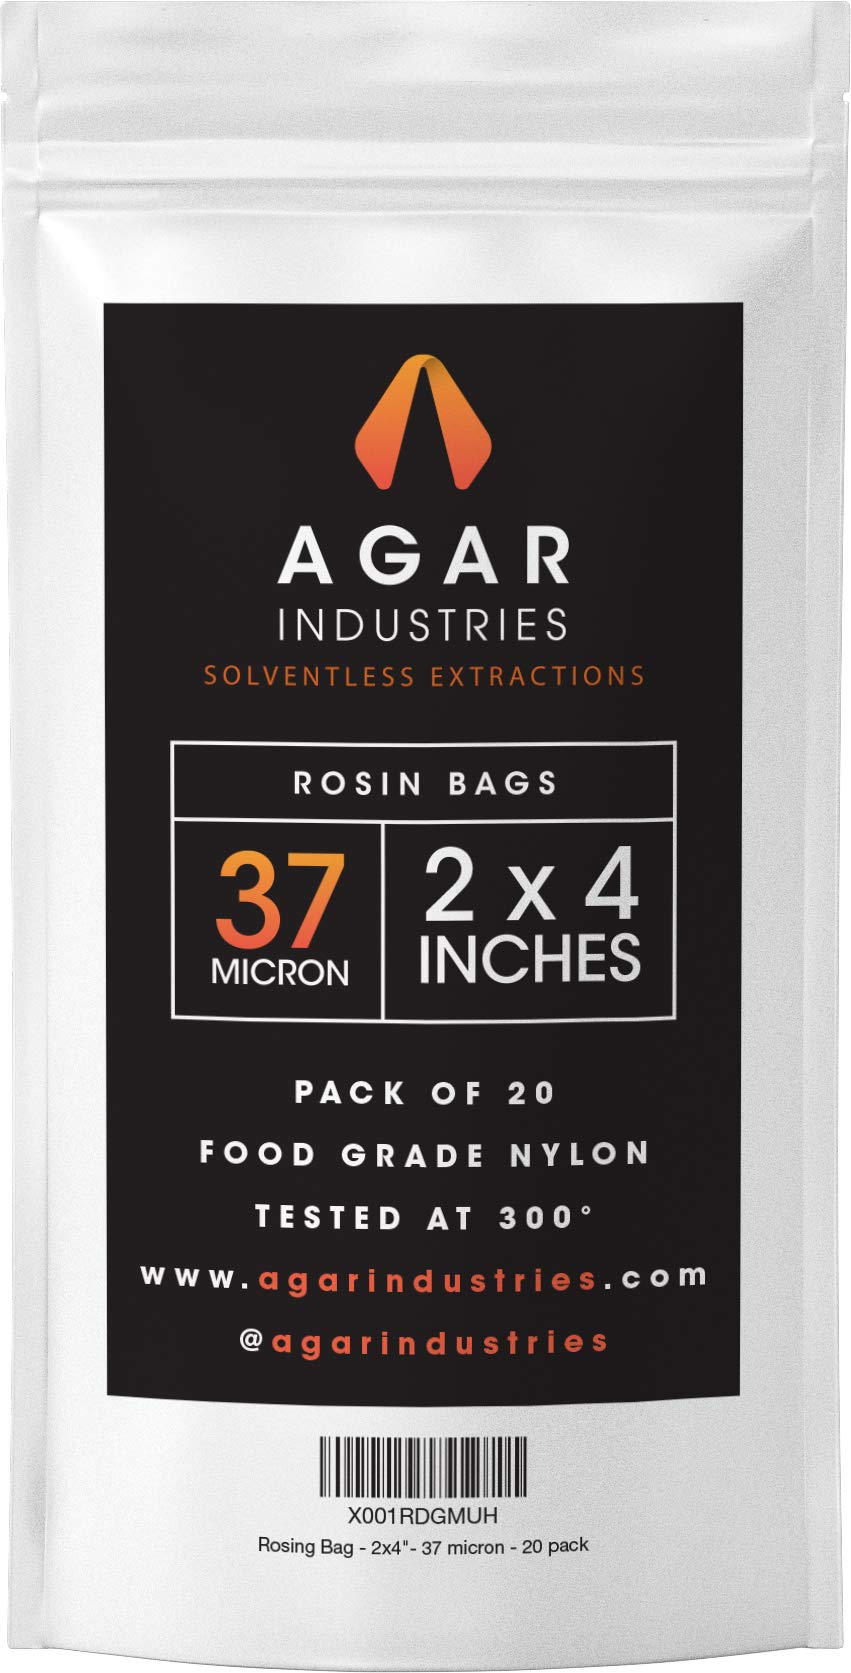 Agar Industries - Rosin Press Filter Bag -Screens for Solventeless Oil Extractions in Rosin Tech (20 pack, 2x4 in. 37 micron)